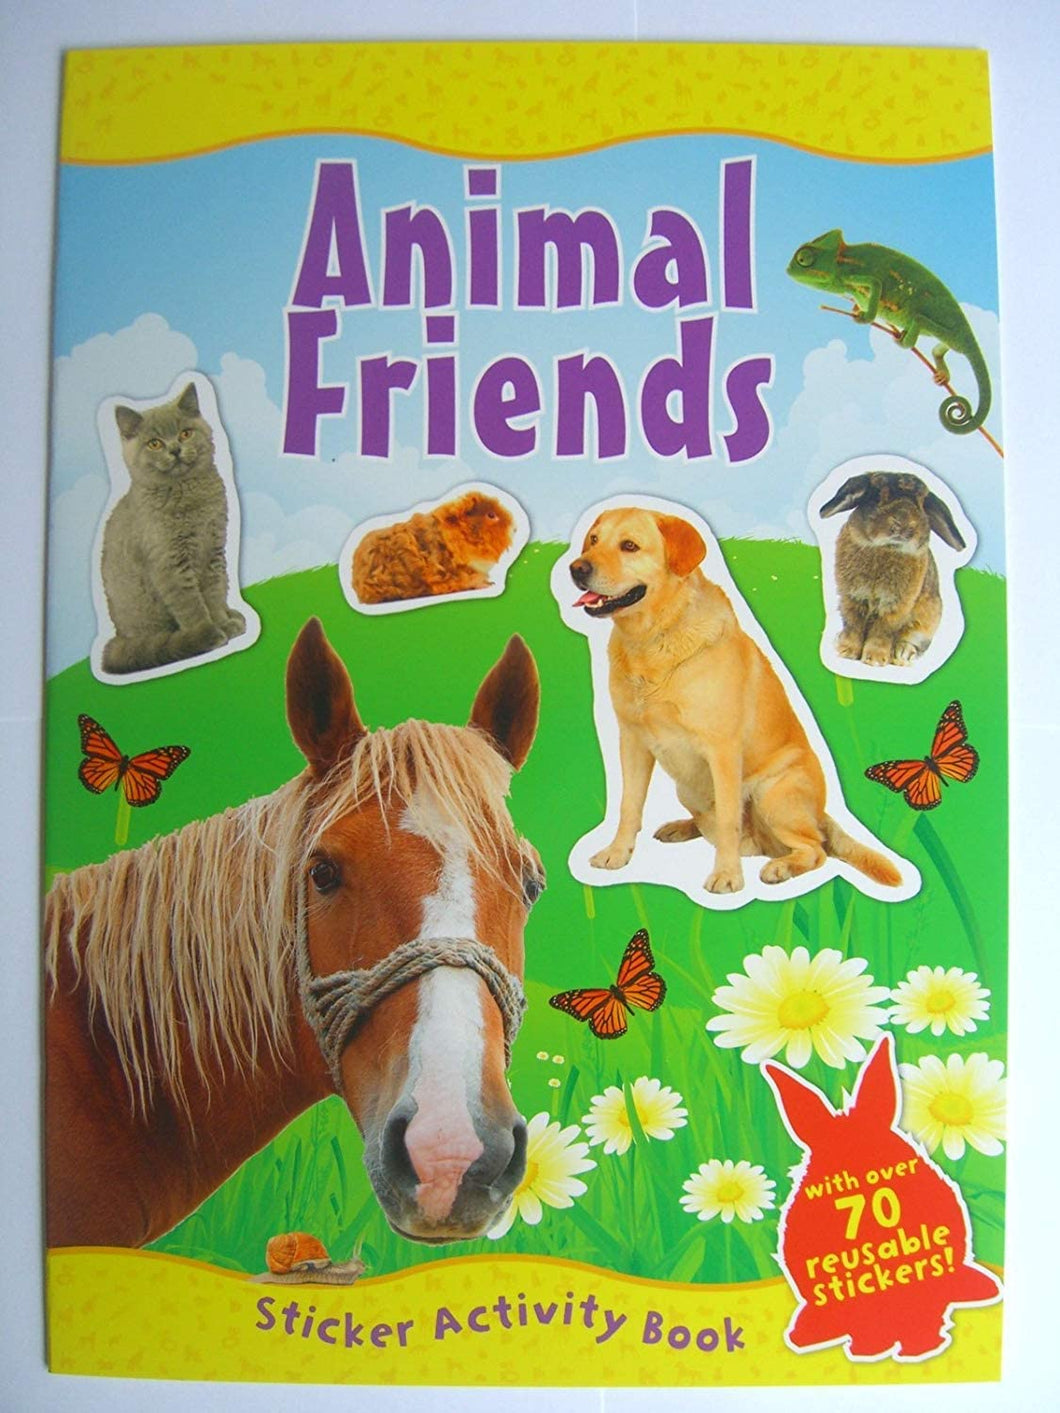 Animal Friends Sticker Activity book